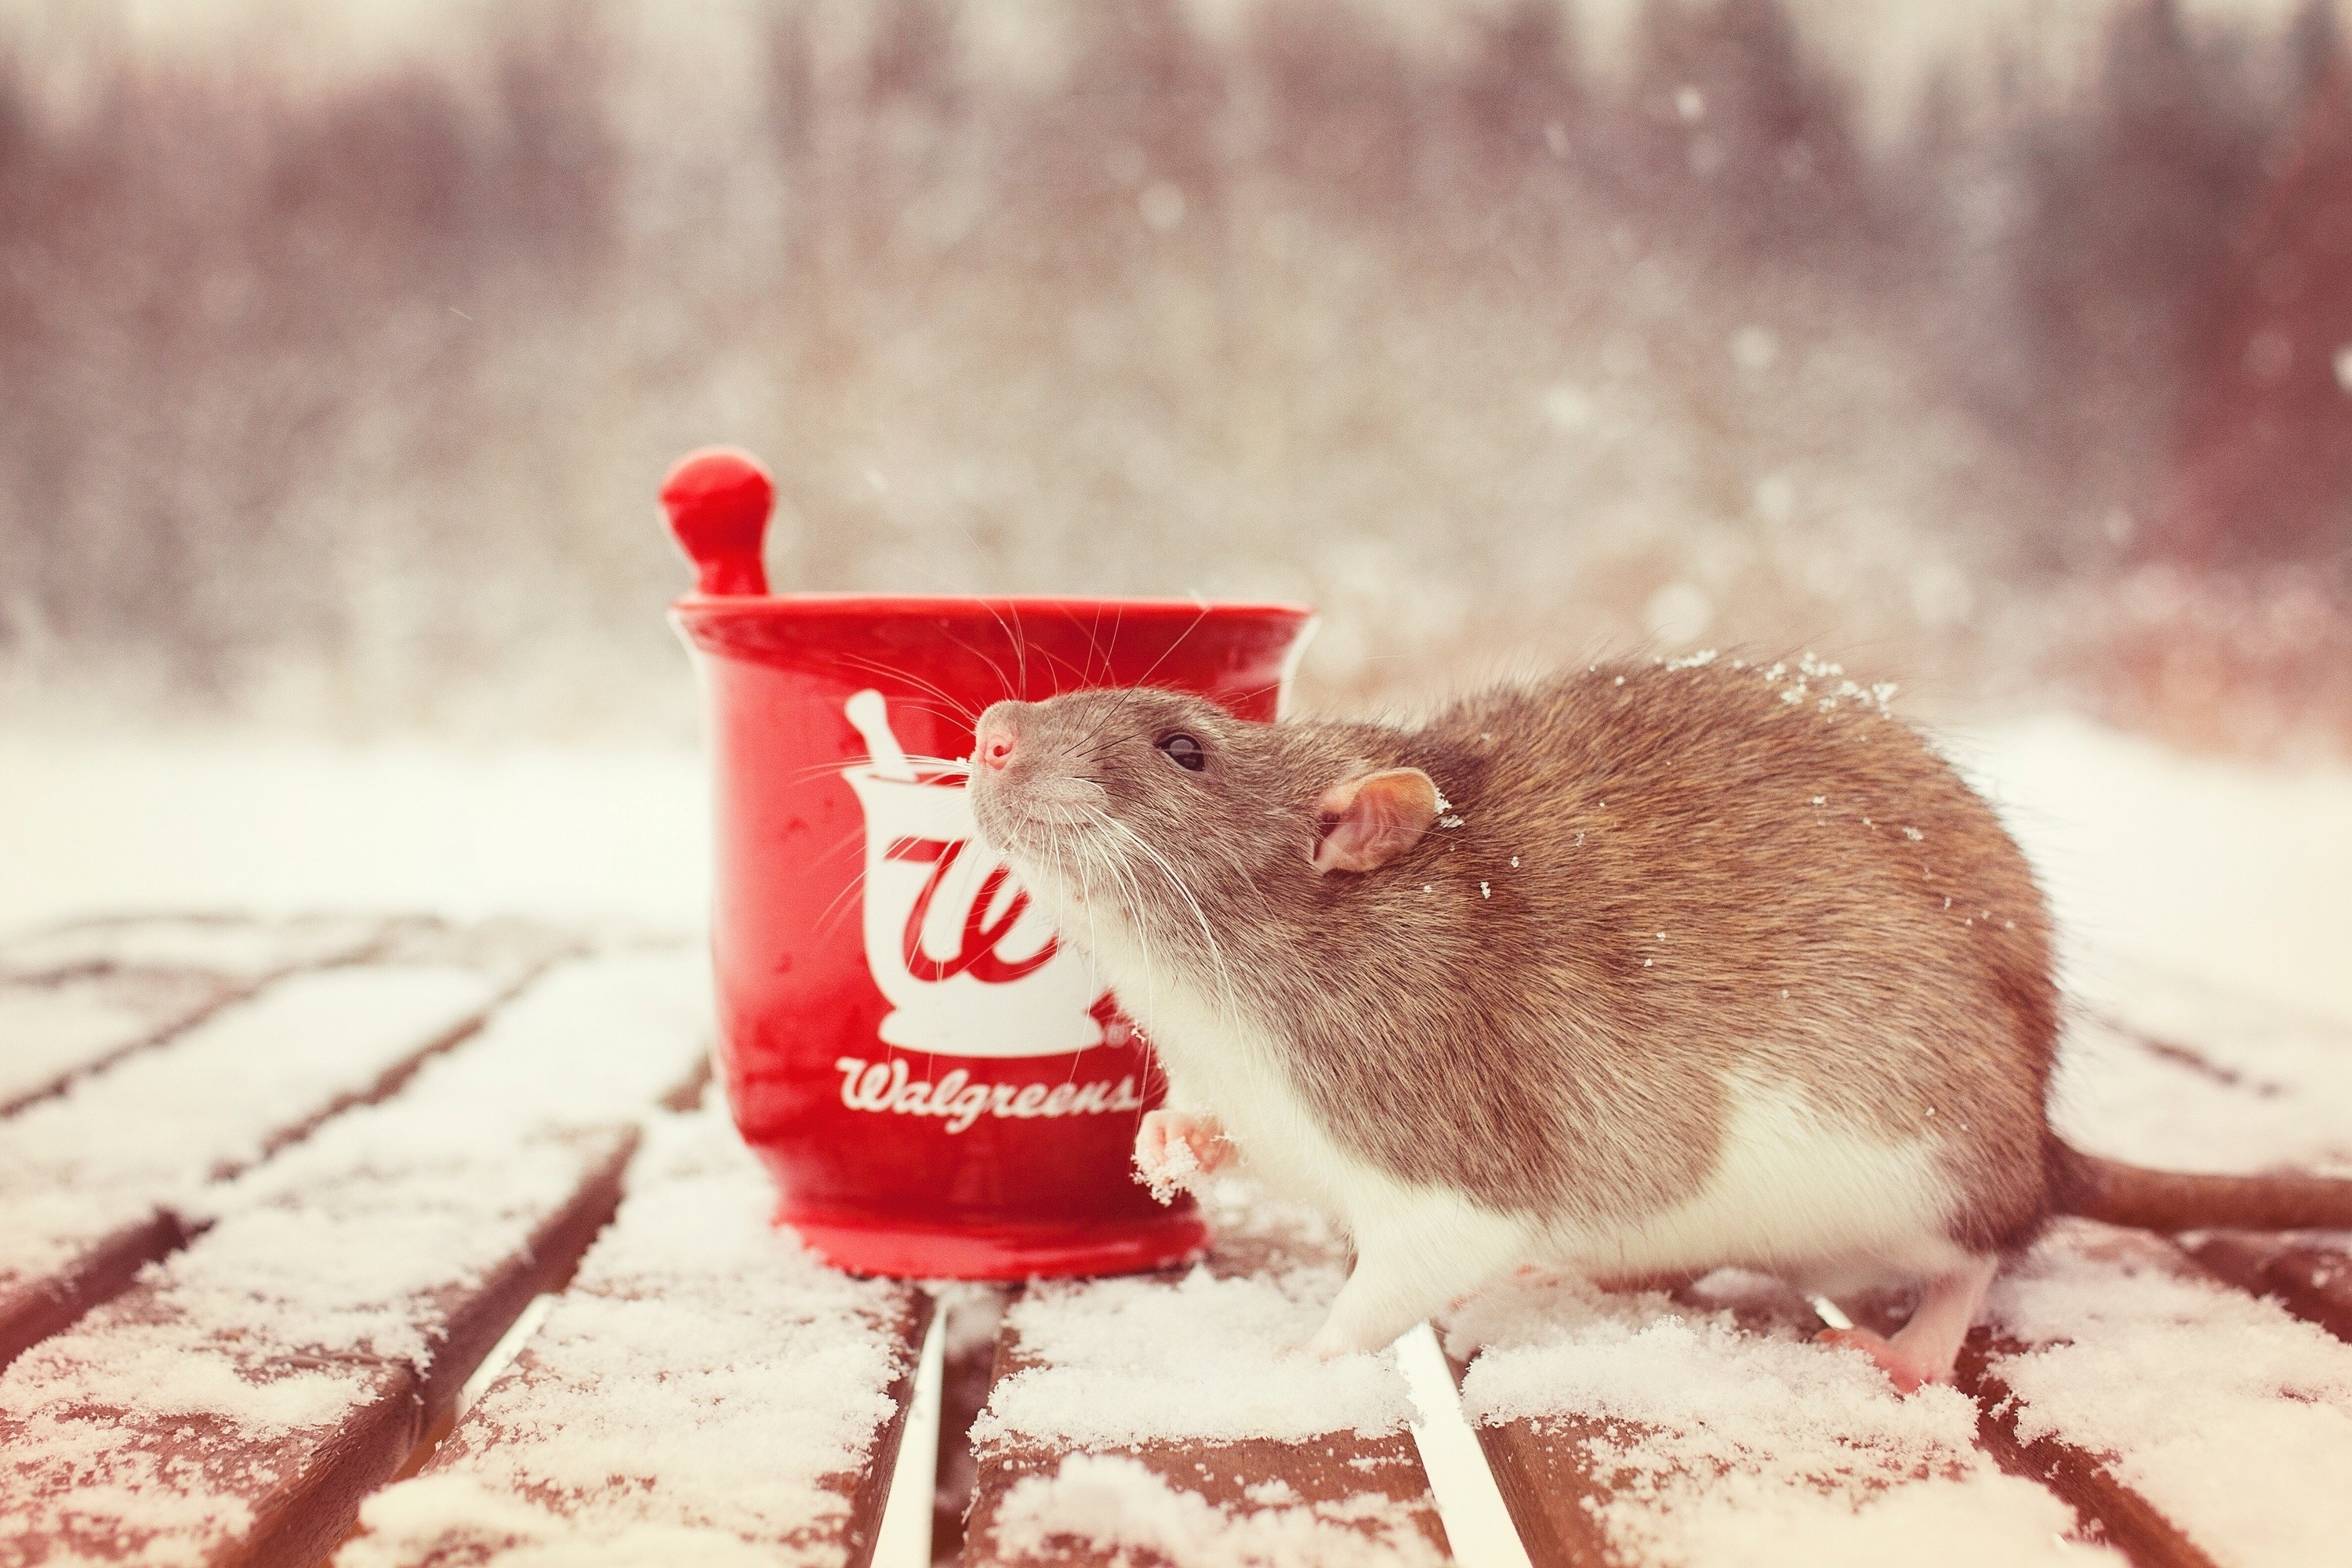 119883 download wallpaper Animals, Rat, Snow, Mortar, Rodent screensavers and pictures for free